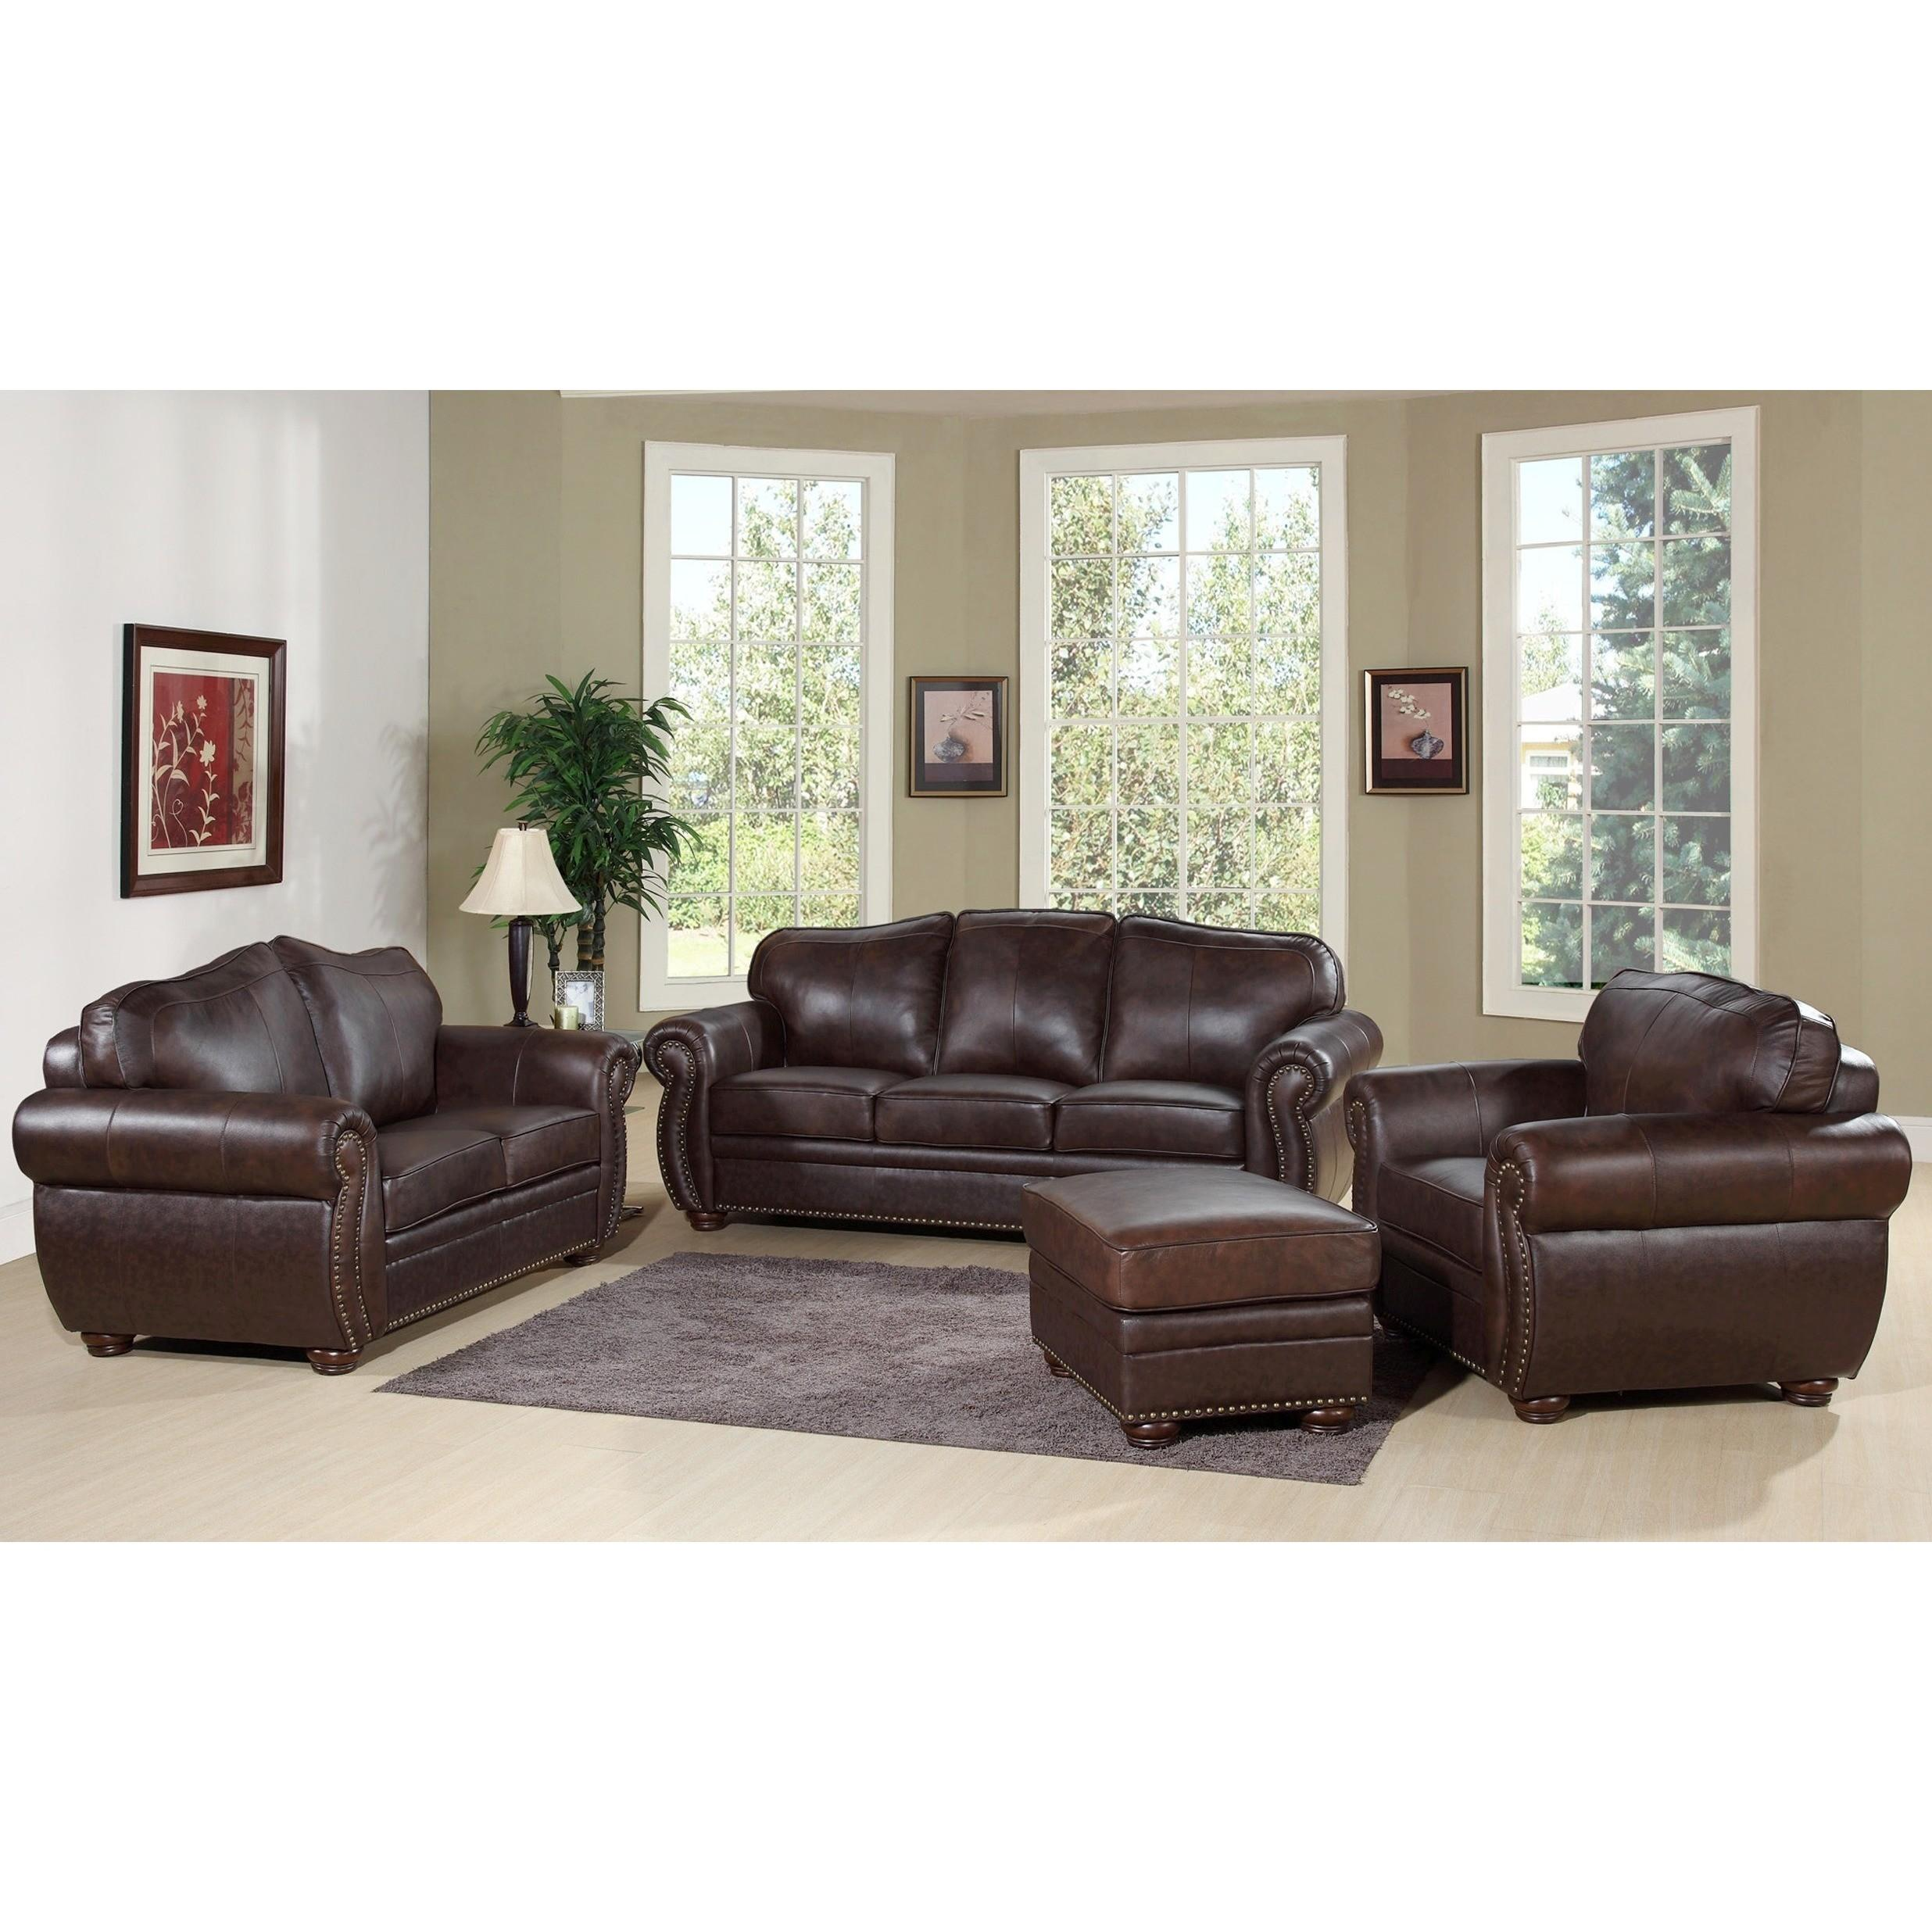 Living Room Leather Chocolate Sofa Loveseat